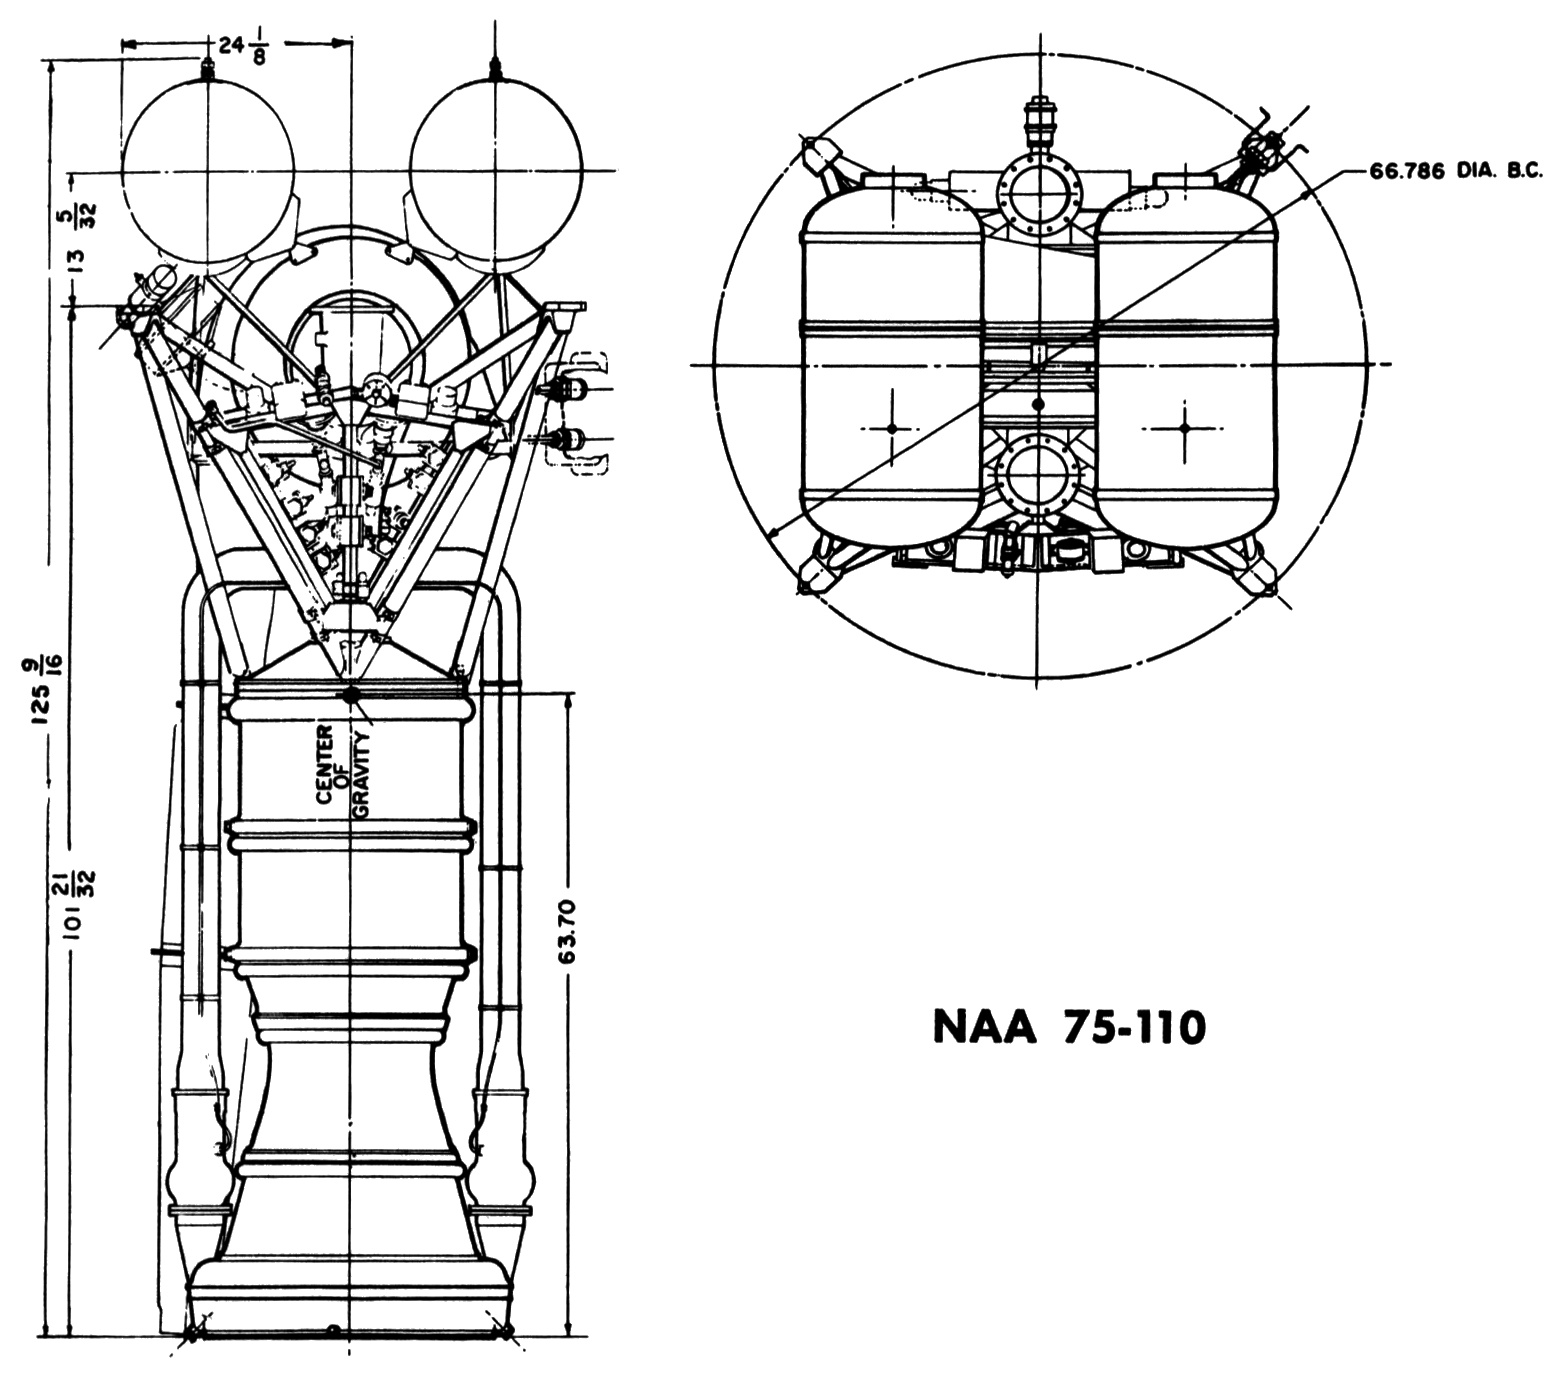 diagram of a model rocket engine